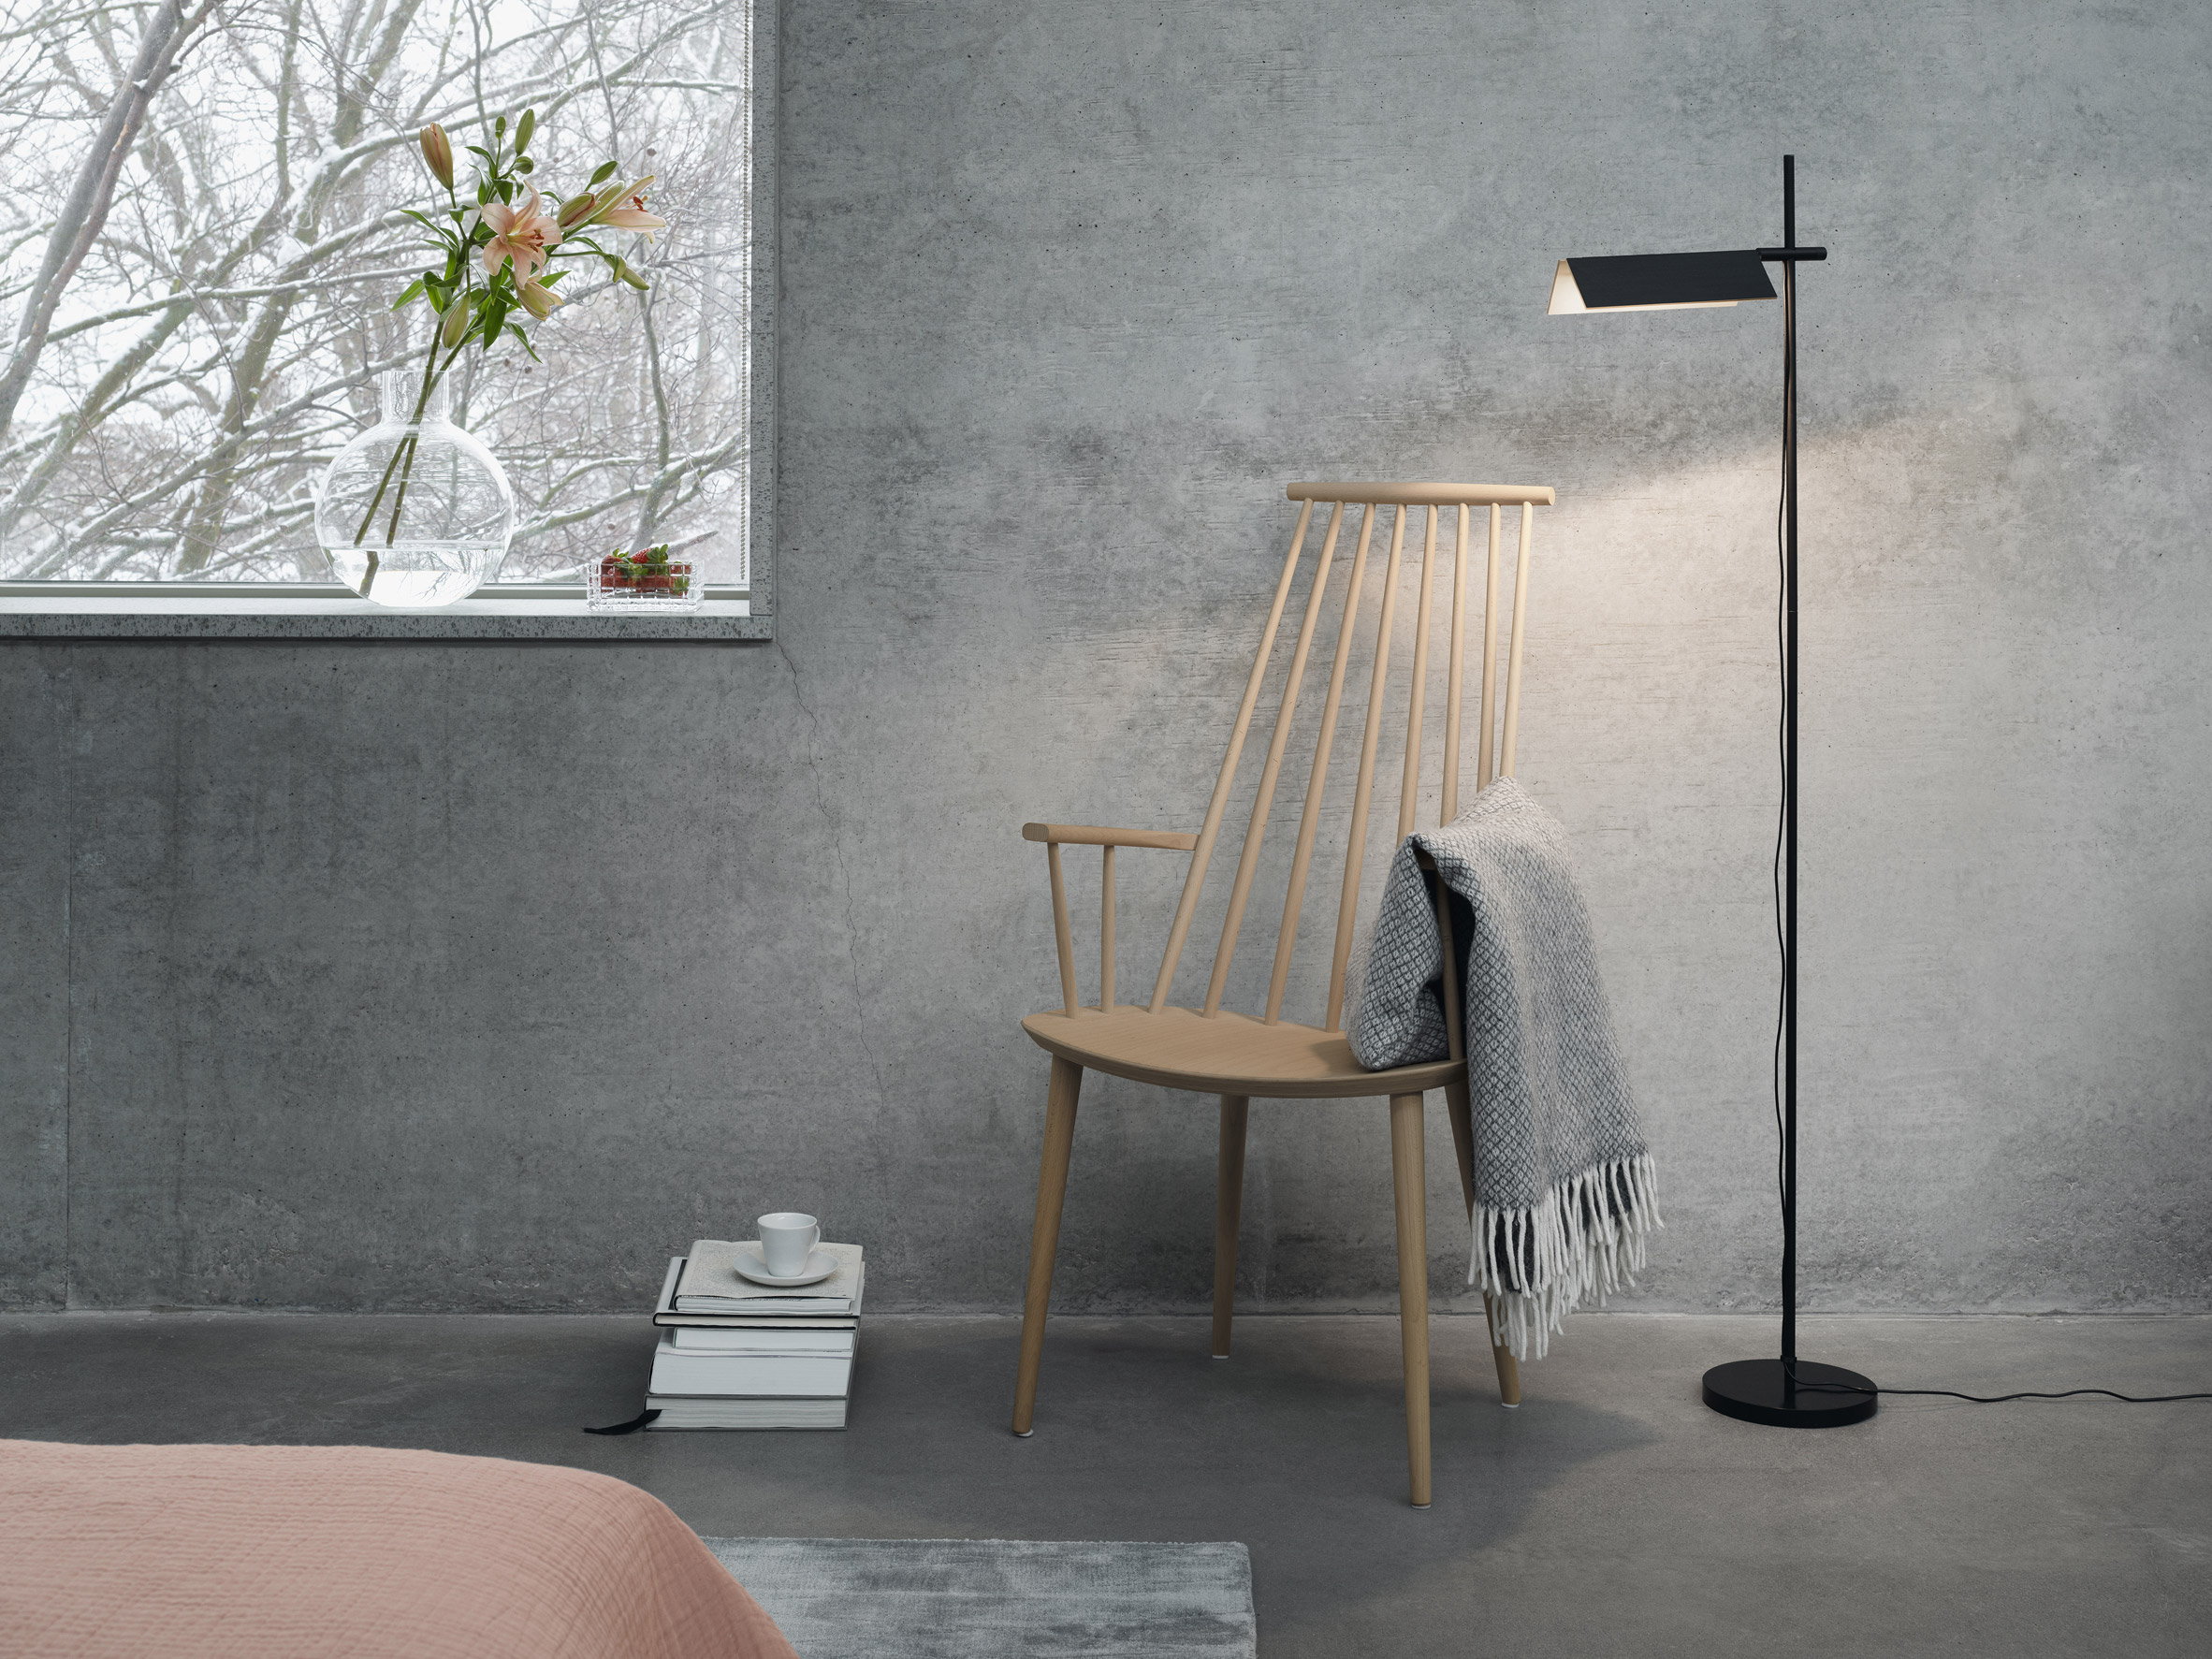 Snøhetta's first lighting collection features black-dyed birch